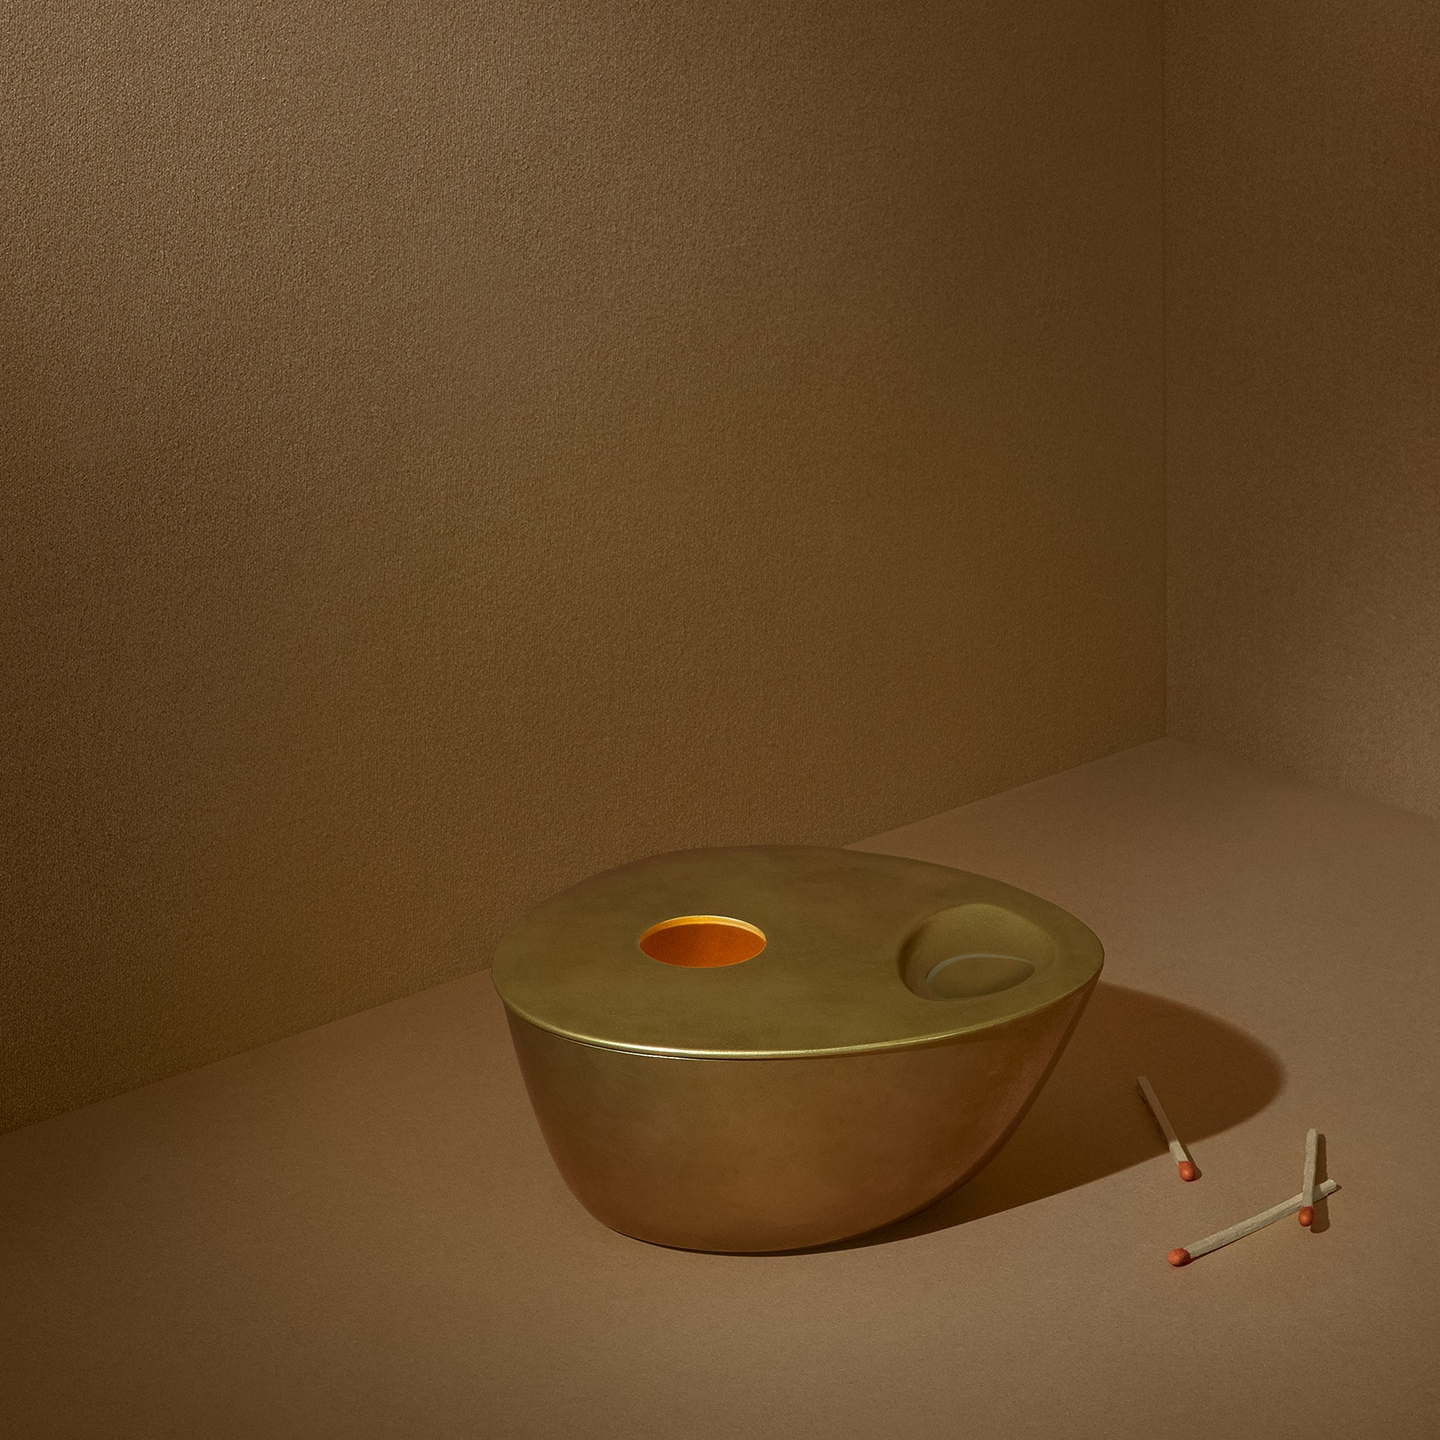 Brass-Oil-Burner-Campaign-Product-Detail-Page-Desktop-1440x1500px.jpg